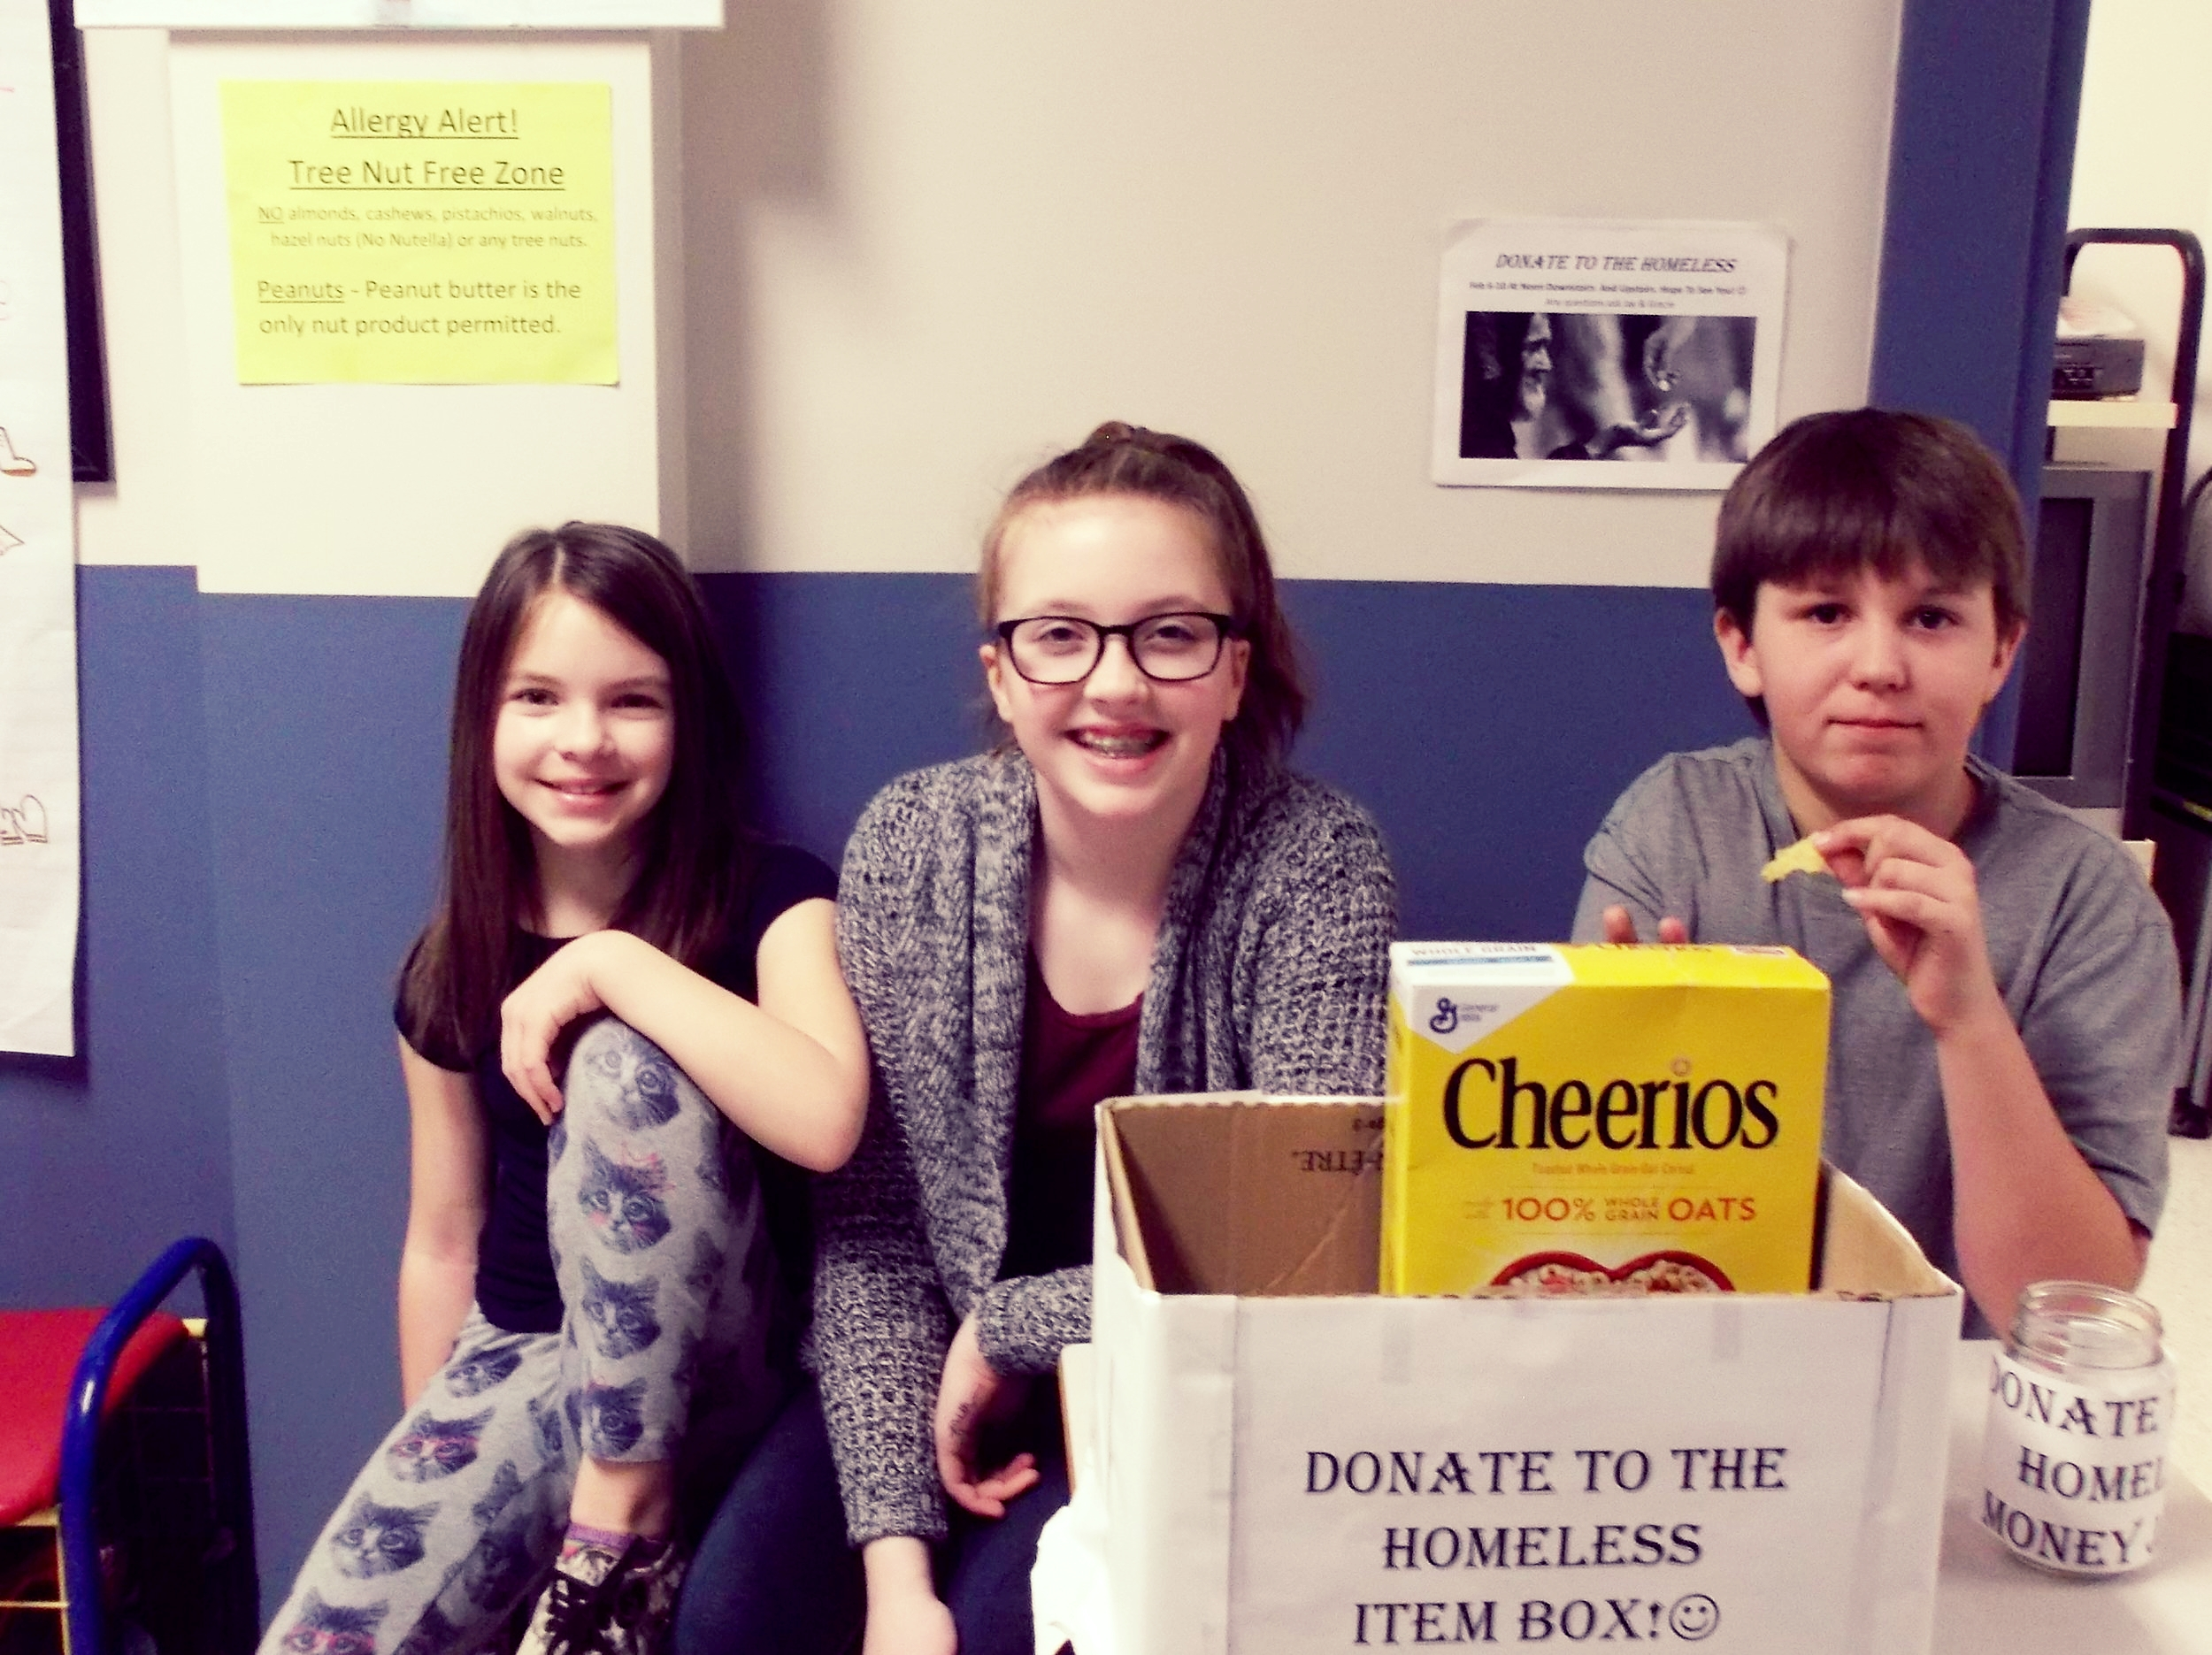 Taking Action For the Homeless: Five grade 6 students realized a need and wanted to help. They created posters, made daily announcements and rallied up other students to help collect items and monetary donations. For two weeks they worked at stations within the school during their breaks. They arranged to deliver items and donations to the Fredericton Homeless Shelter.  Nobody starts out homeless. However, during one's lifetime, various circumstances turn necessities we all take for granted, like food and shelter, into scarce resources. Whether it be mental health issues, addiction or family circumstance, some people lose their way. Most of us are too busy to see the problem of homelessness dismissing it's existence. But we can't dismiss the human being. Someone's brother, father, son, sister, mother and daughter